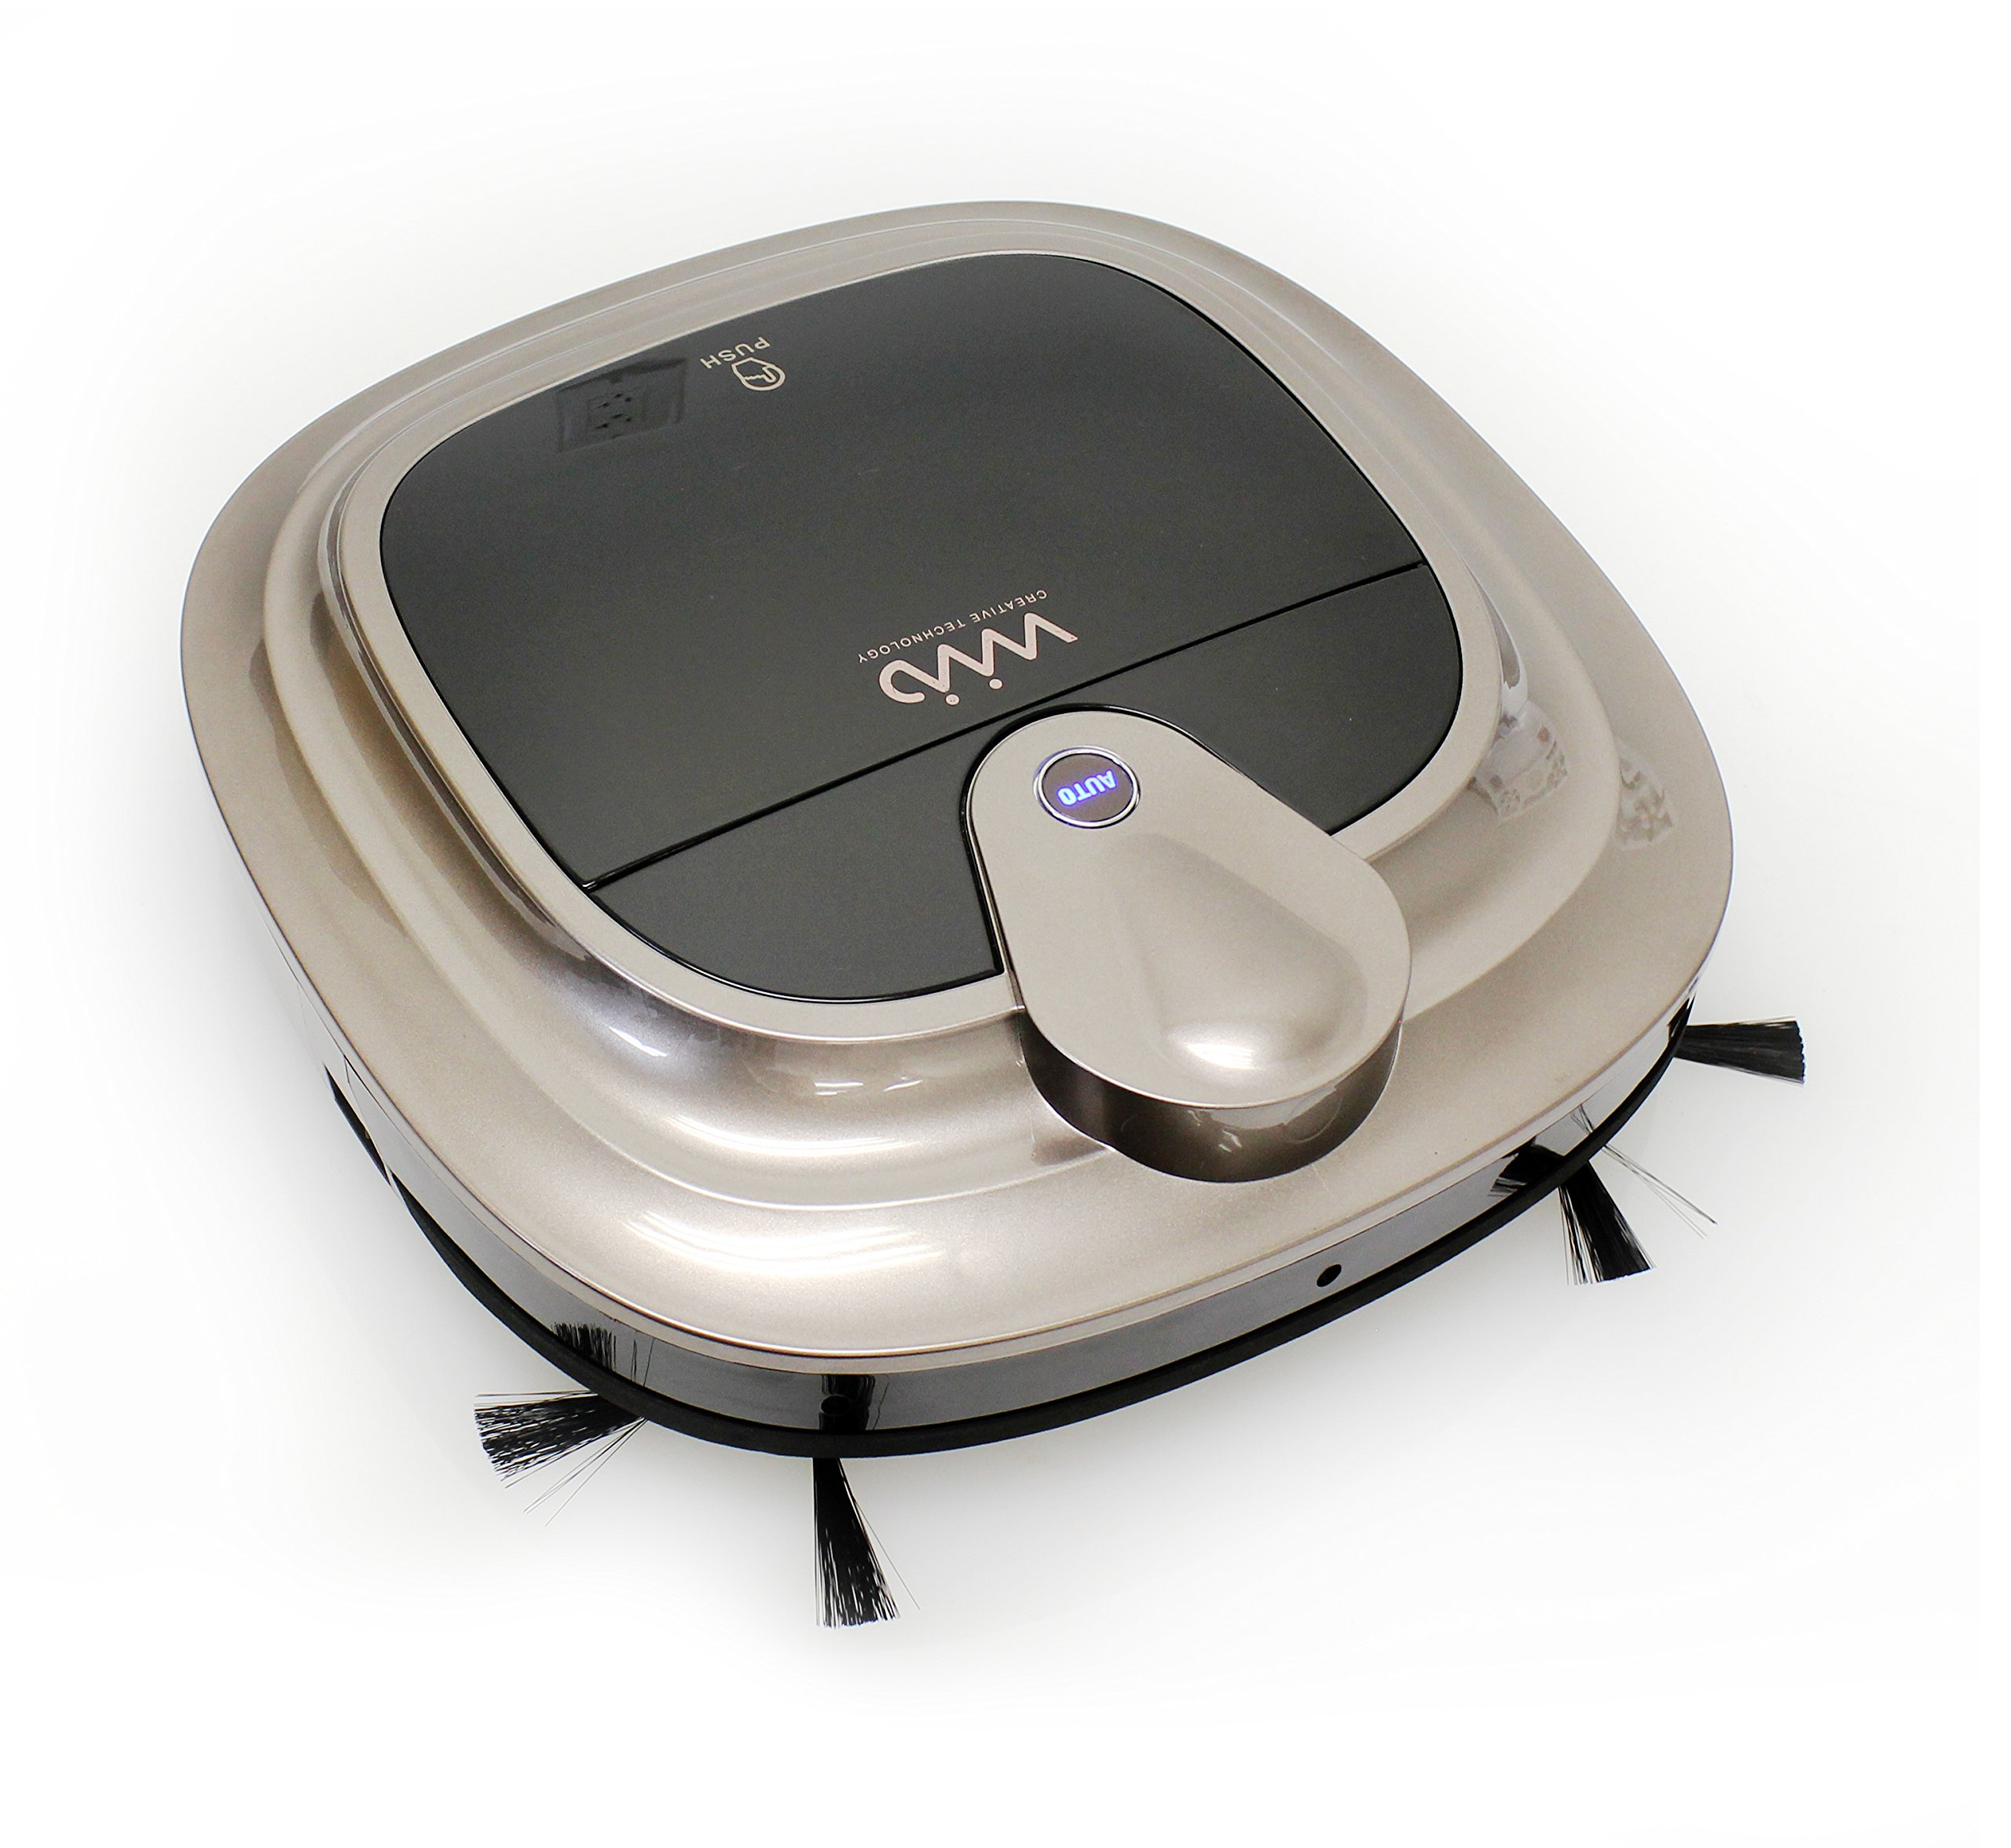 VViViD Home Navigating Rechargeable Robotic Vacuum Cleaner w/Removeable Mop Attachement